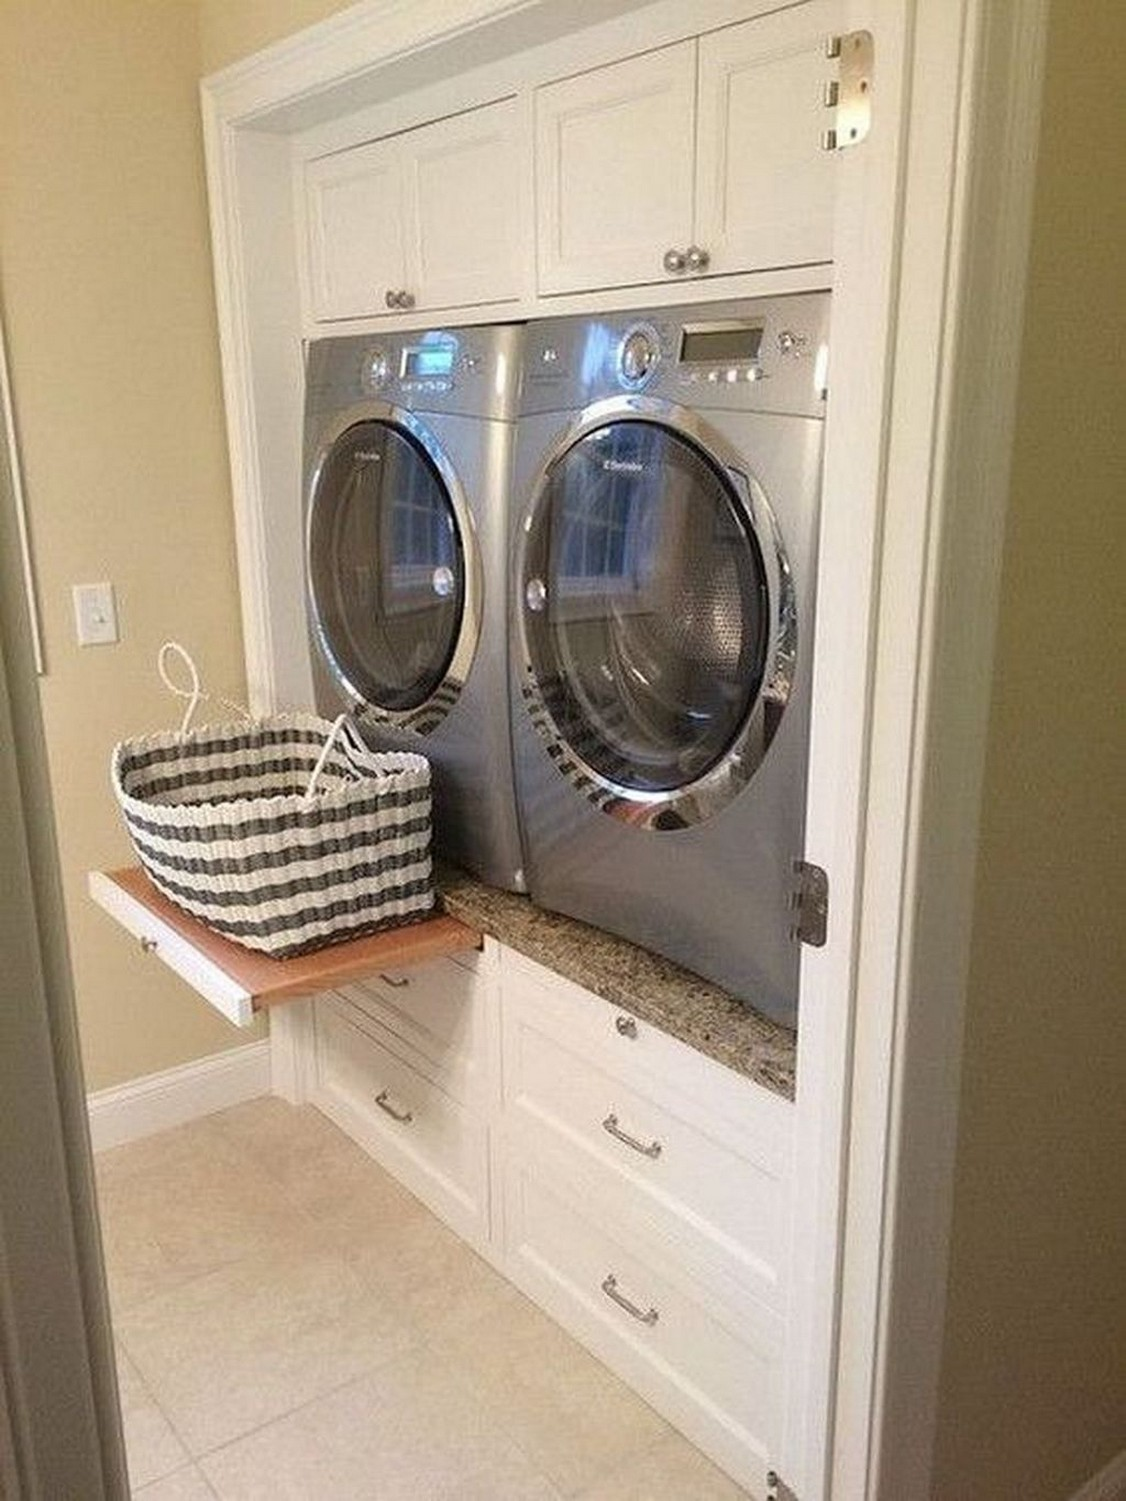 72 Laundry Room Cabinets All You Need To Know 4